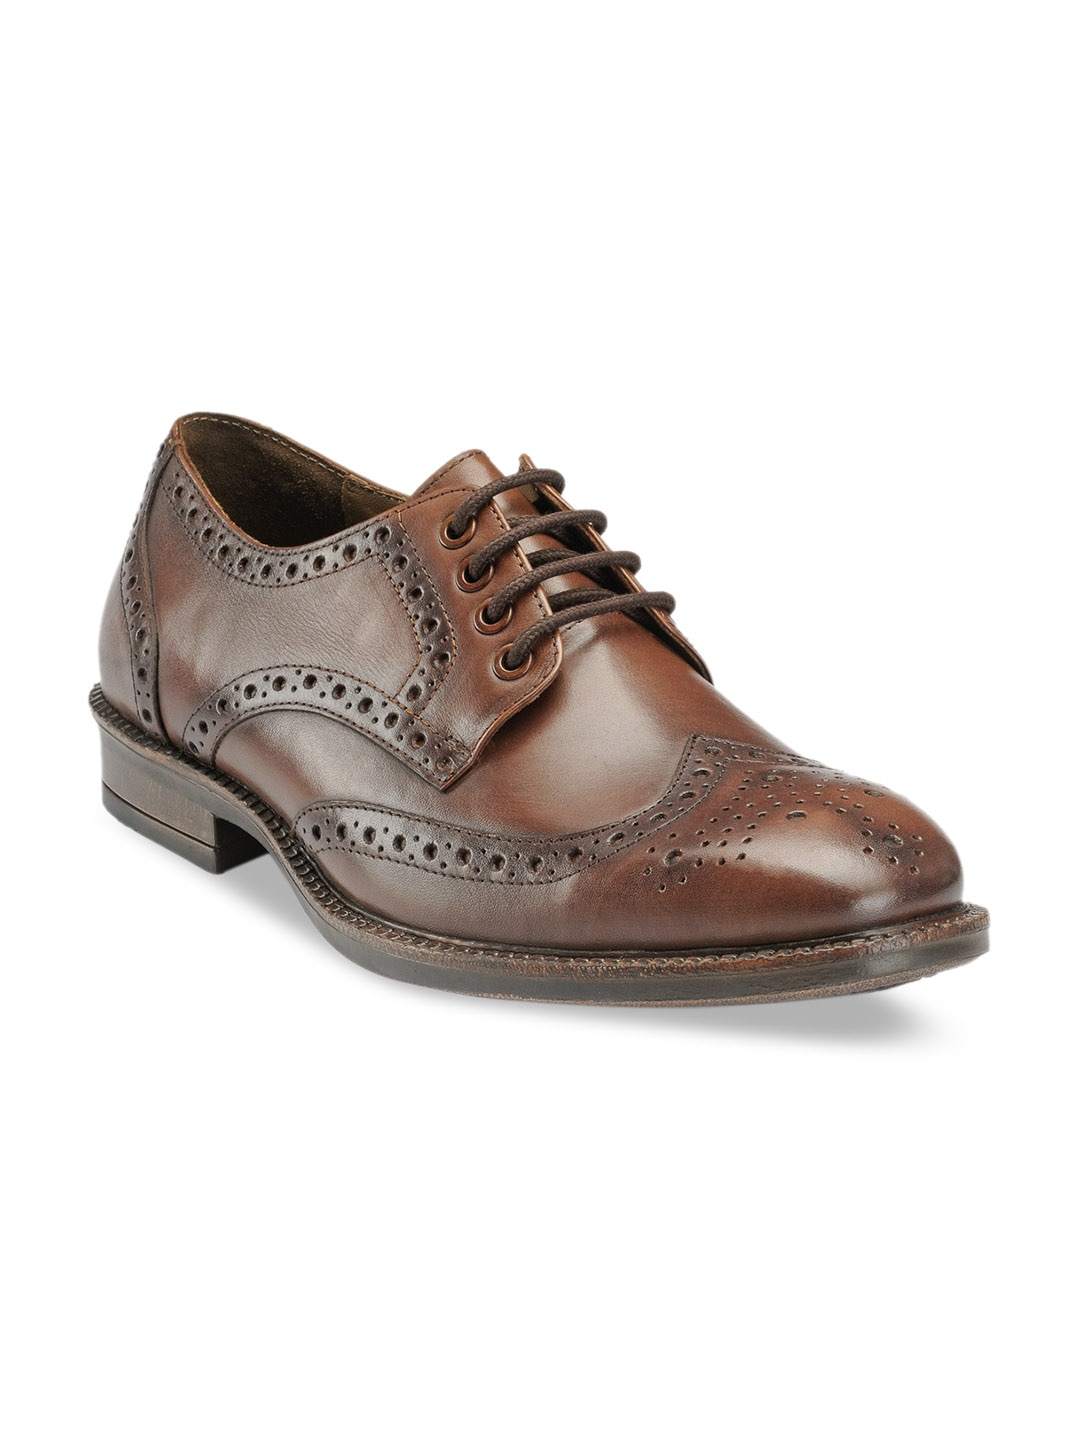 Brown Solid Leather Brogues